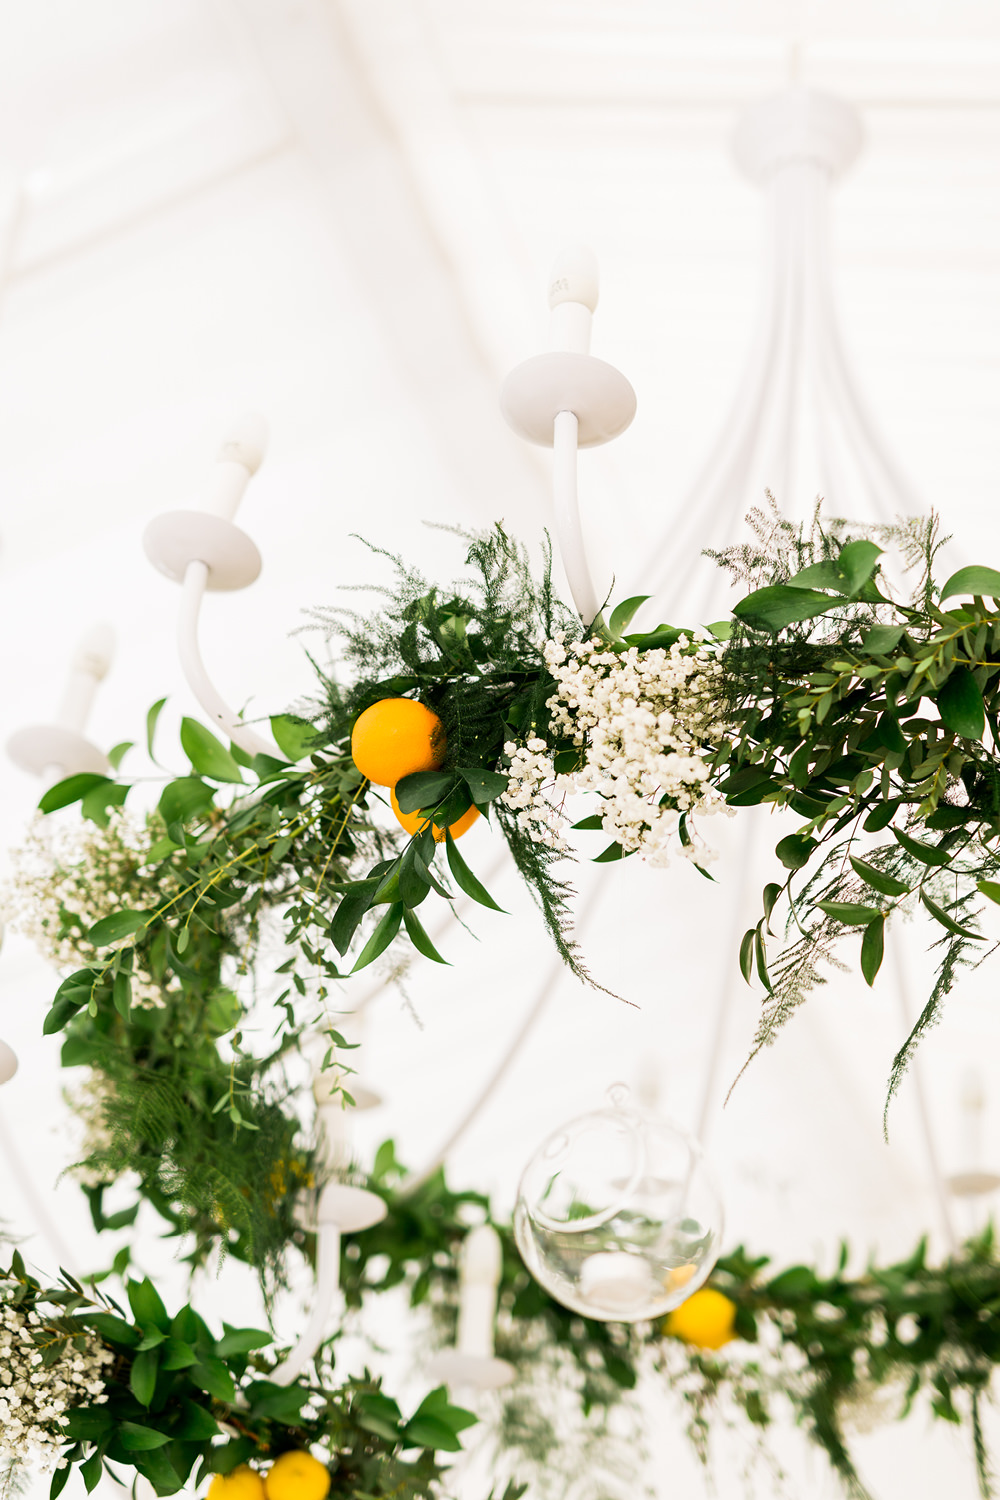 portugal fineart wedding photography tabledecor agostos